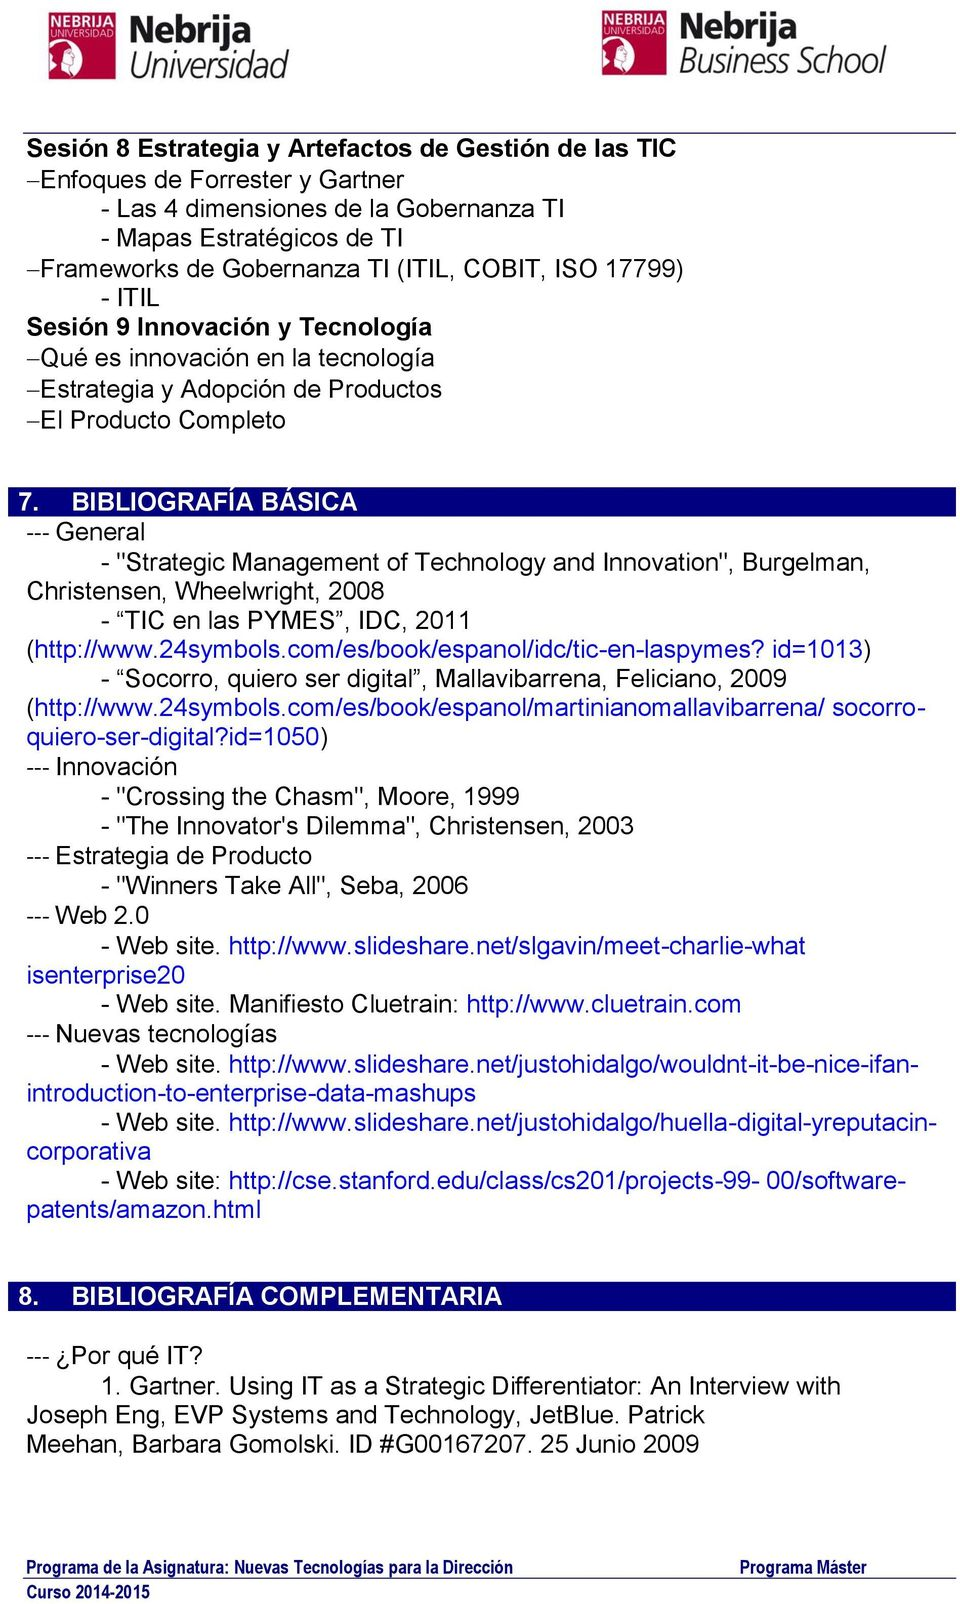 "BIBLIOGRAFÍA BÁSICA -- General - ""Strategic Management of Technology and Innovation"", Burgelman, Christensen, Wheelwright, 2008 - TIC en las PYMES, IDC, 2011 (http://www.24symbols."